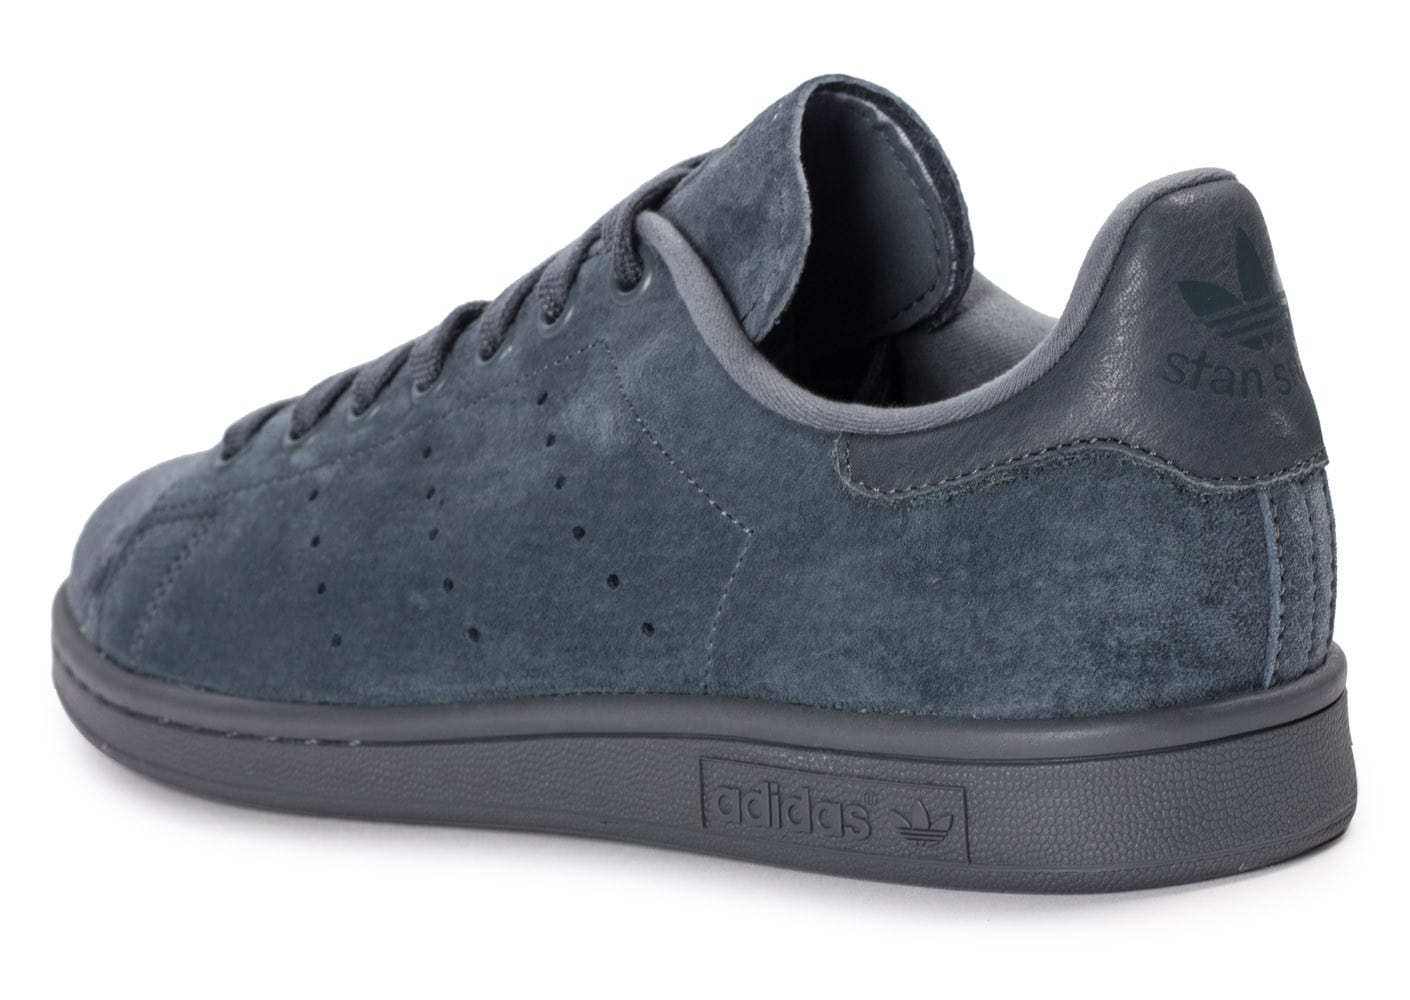 adidas Stan Smith Onyx Chaussures Baskets homme Chausport